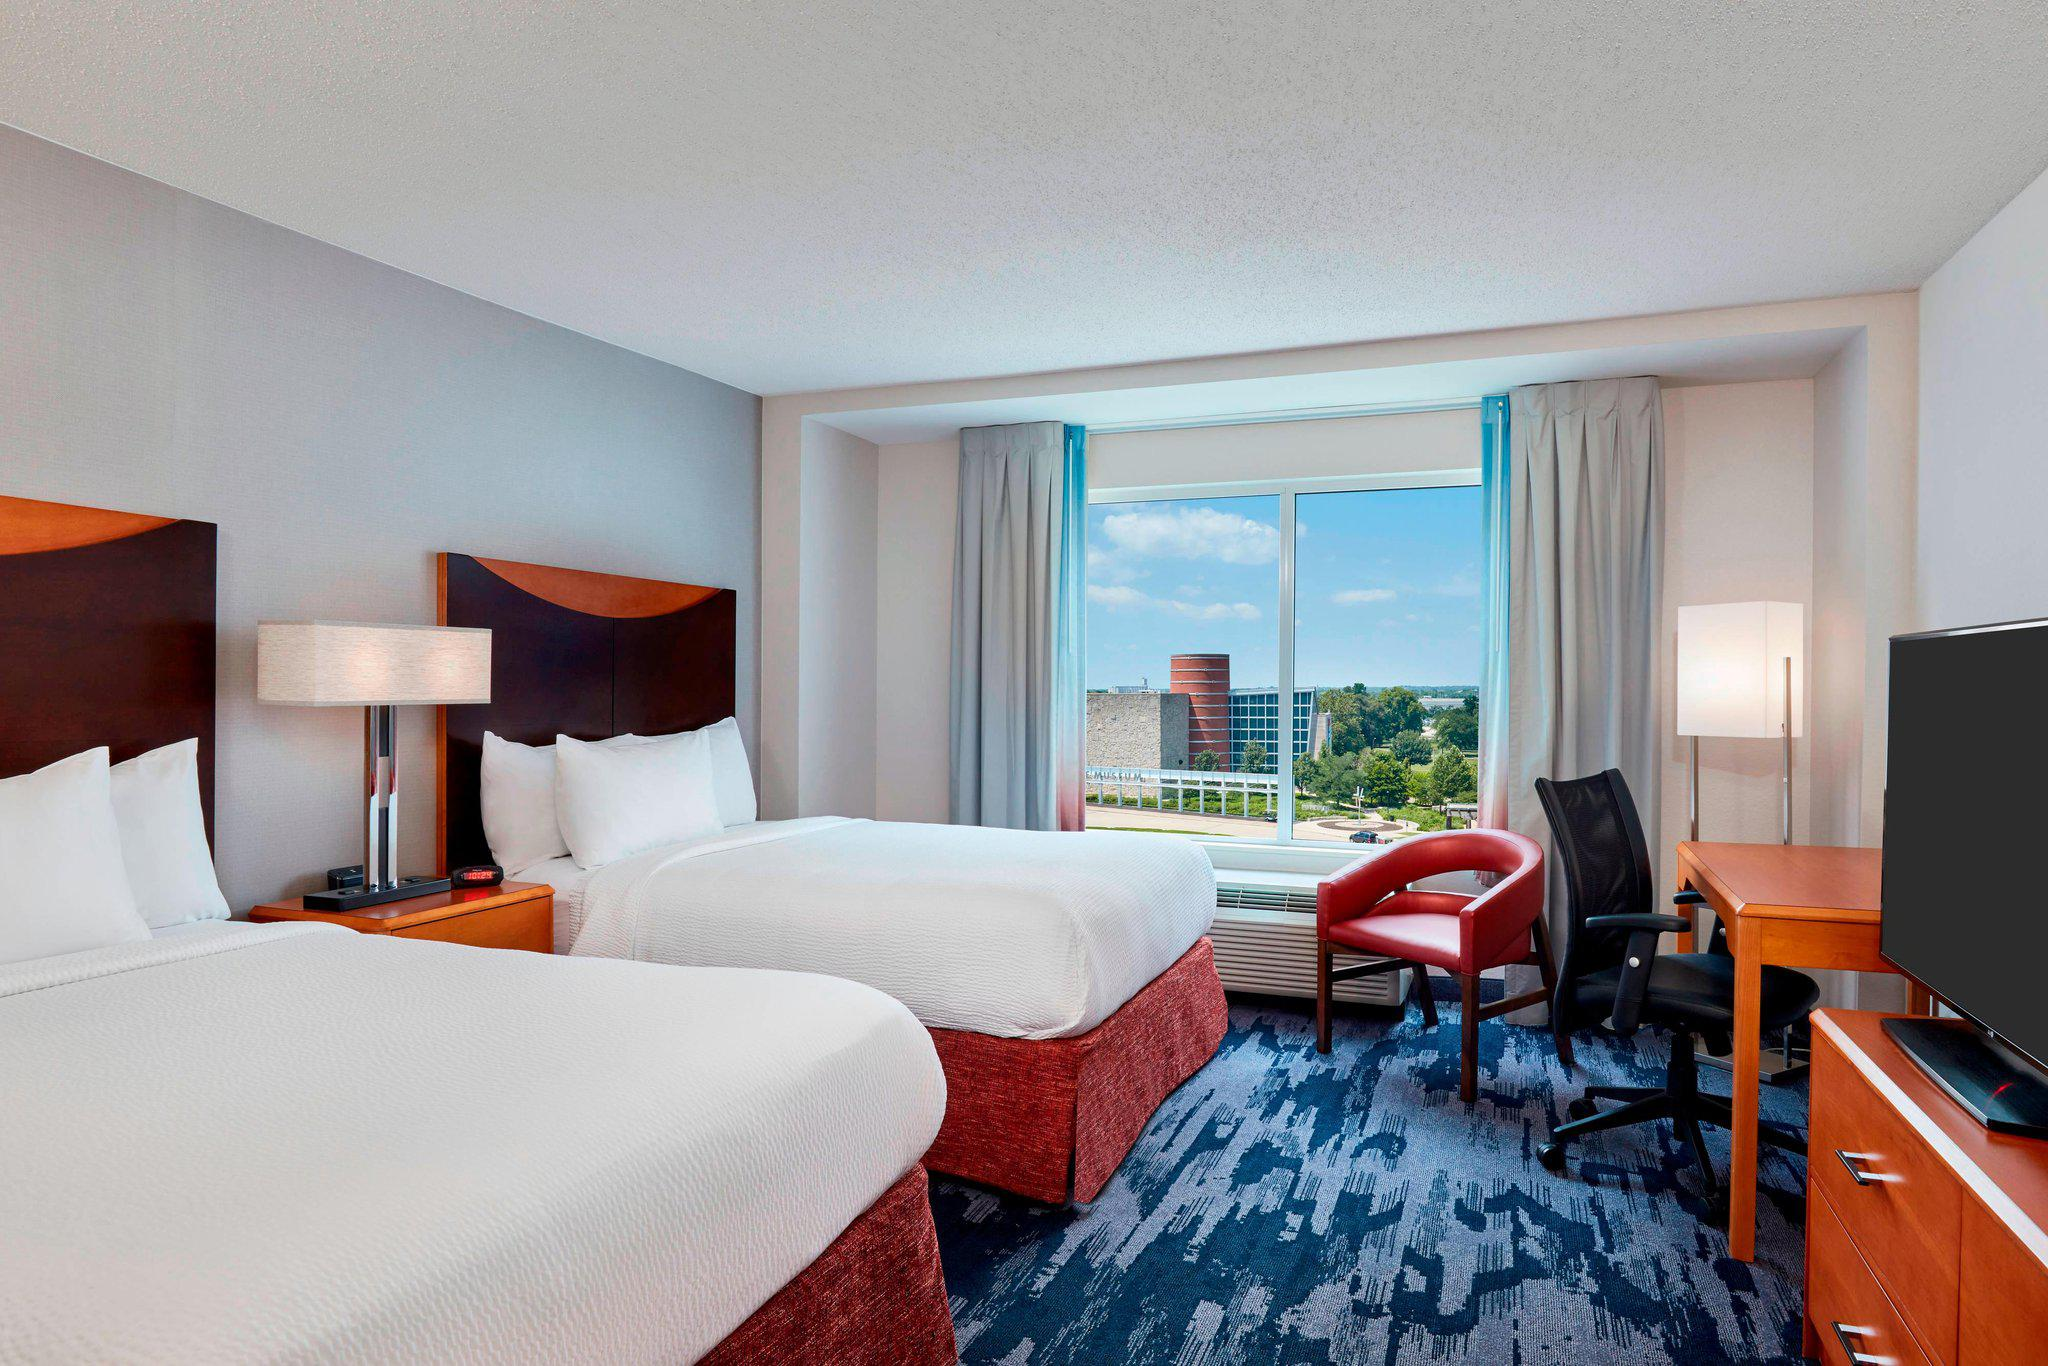 Fairfield Inn & Suites by Marriott Indianapolis Downtown - OPEN